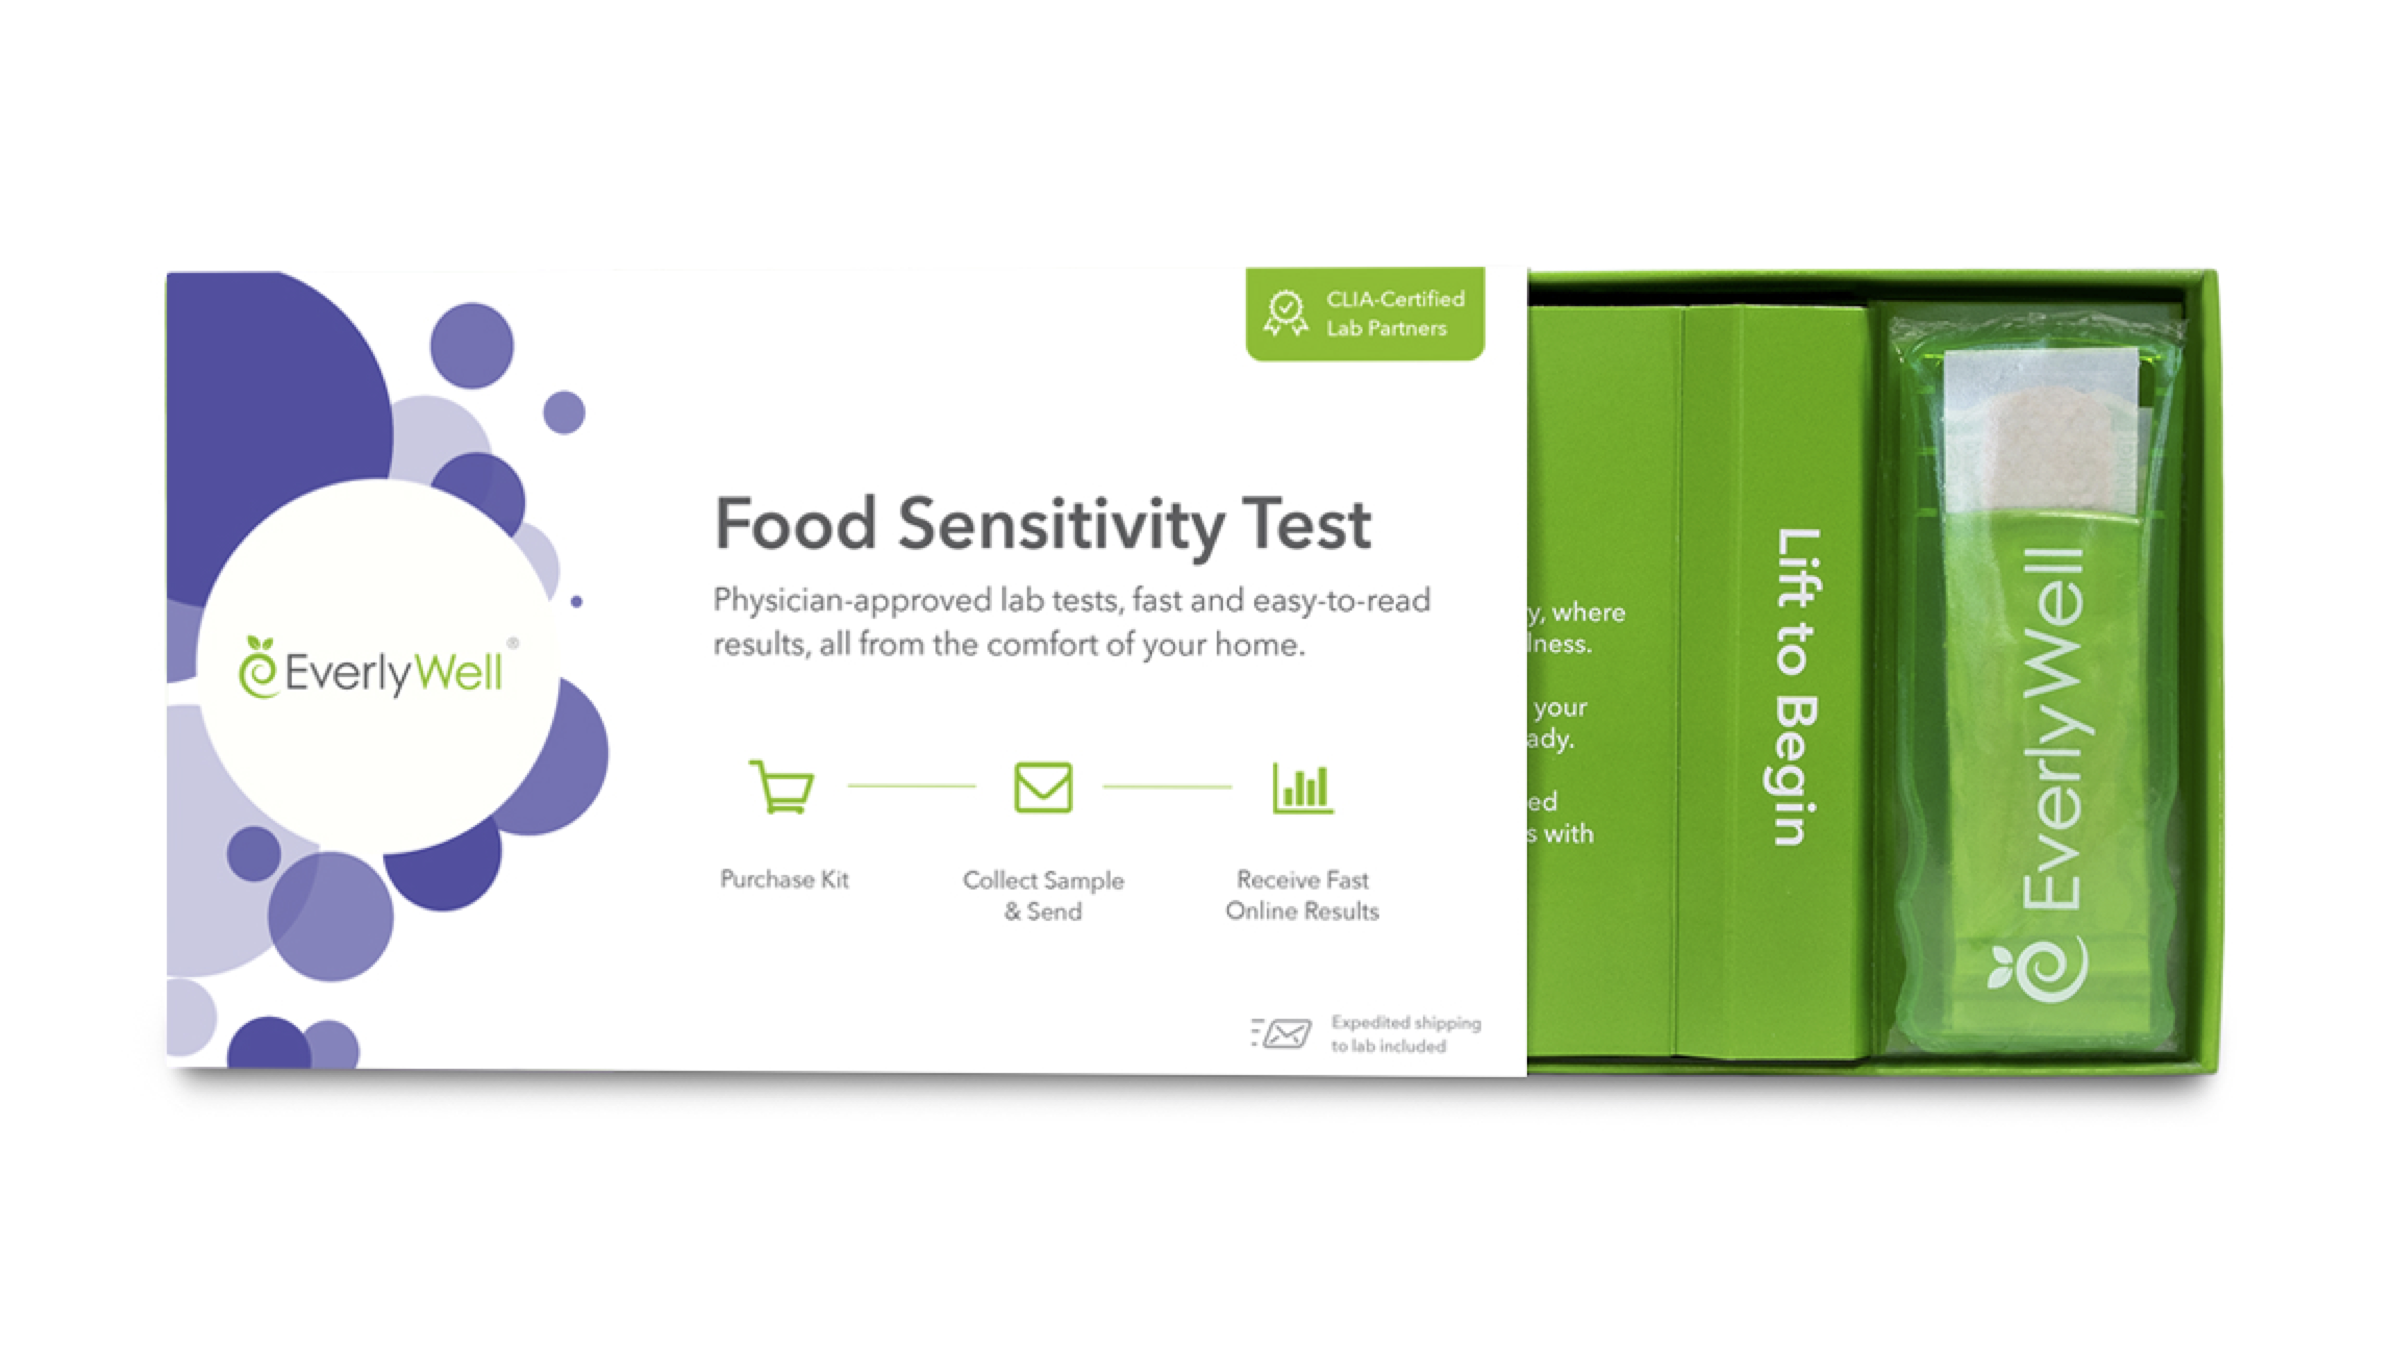 Foodsensitivitytestopenbox